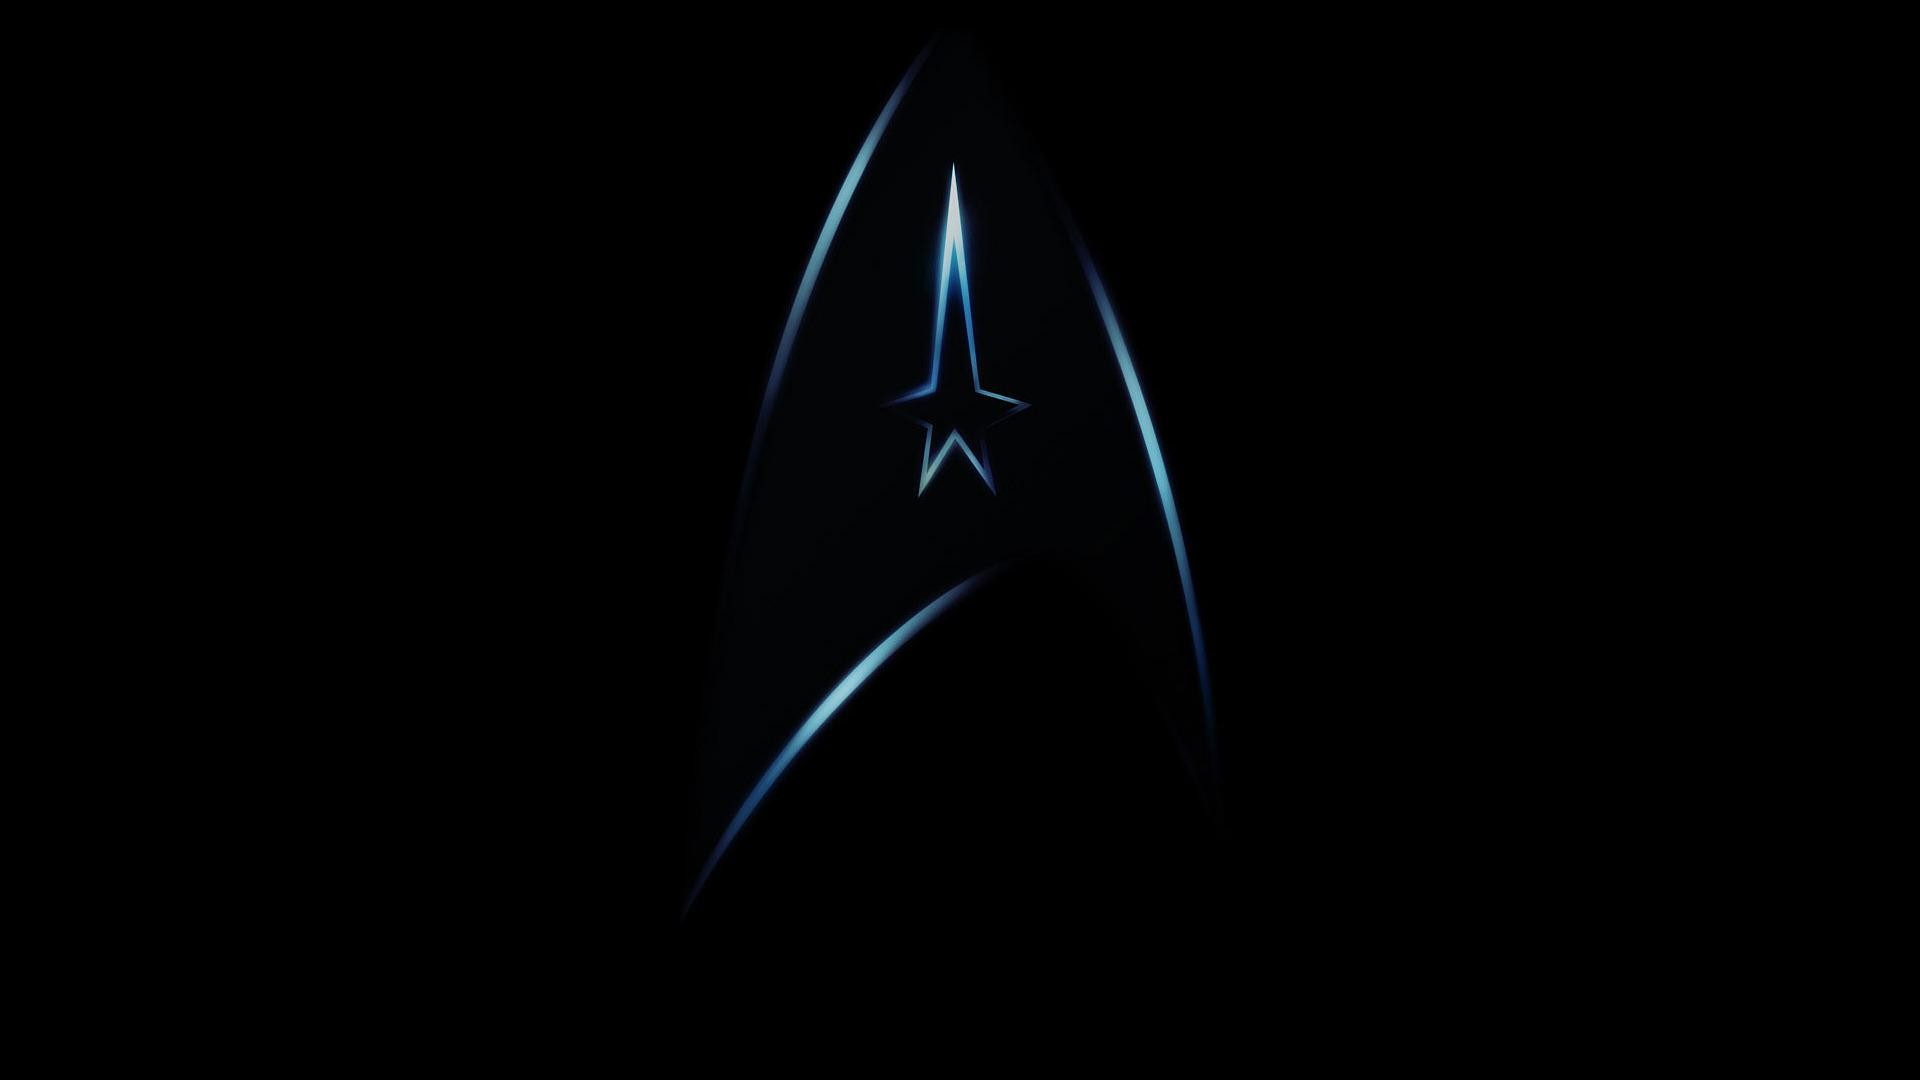 1920x1080 Star Trek Logo Wallpaper